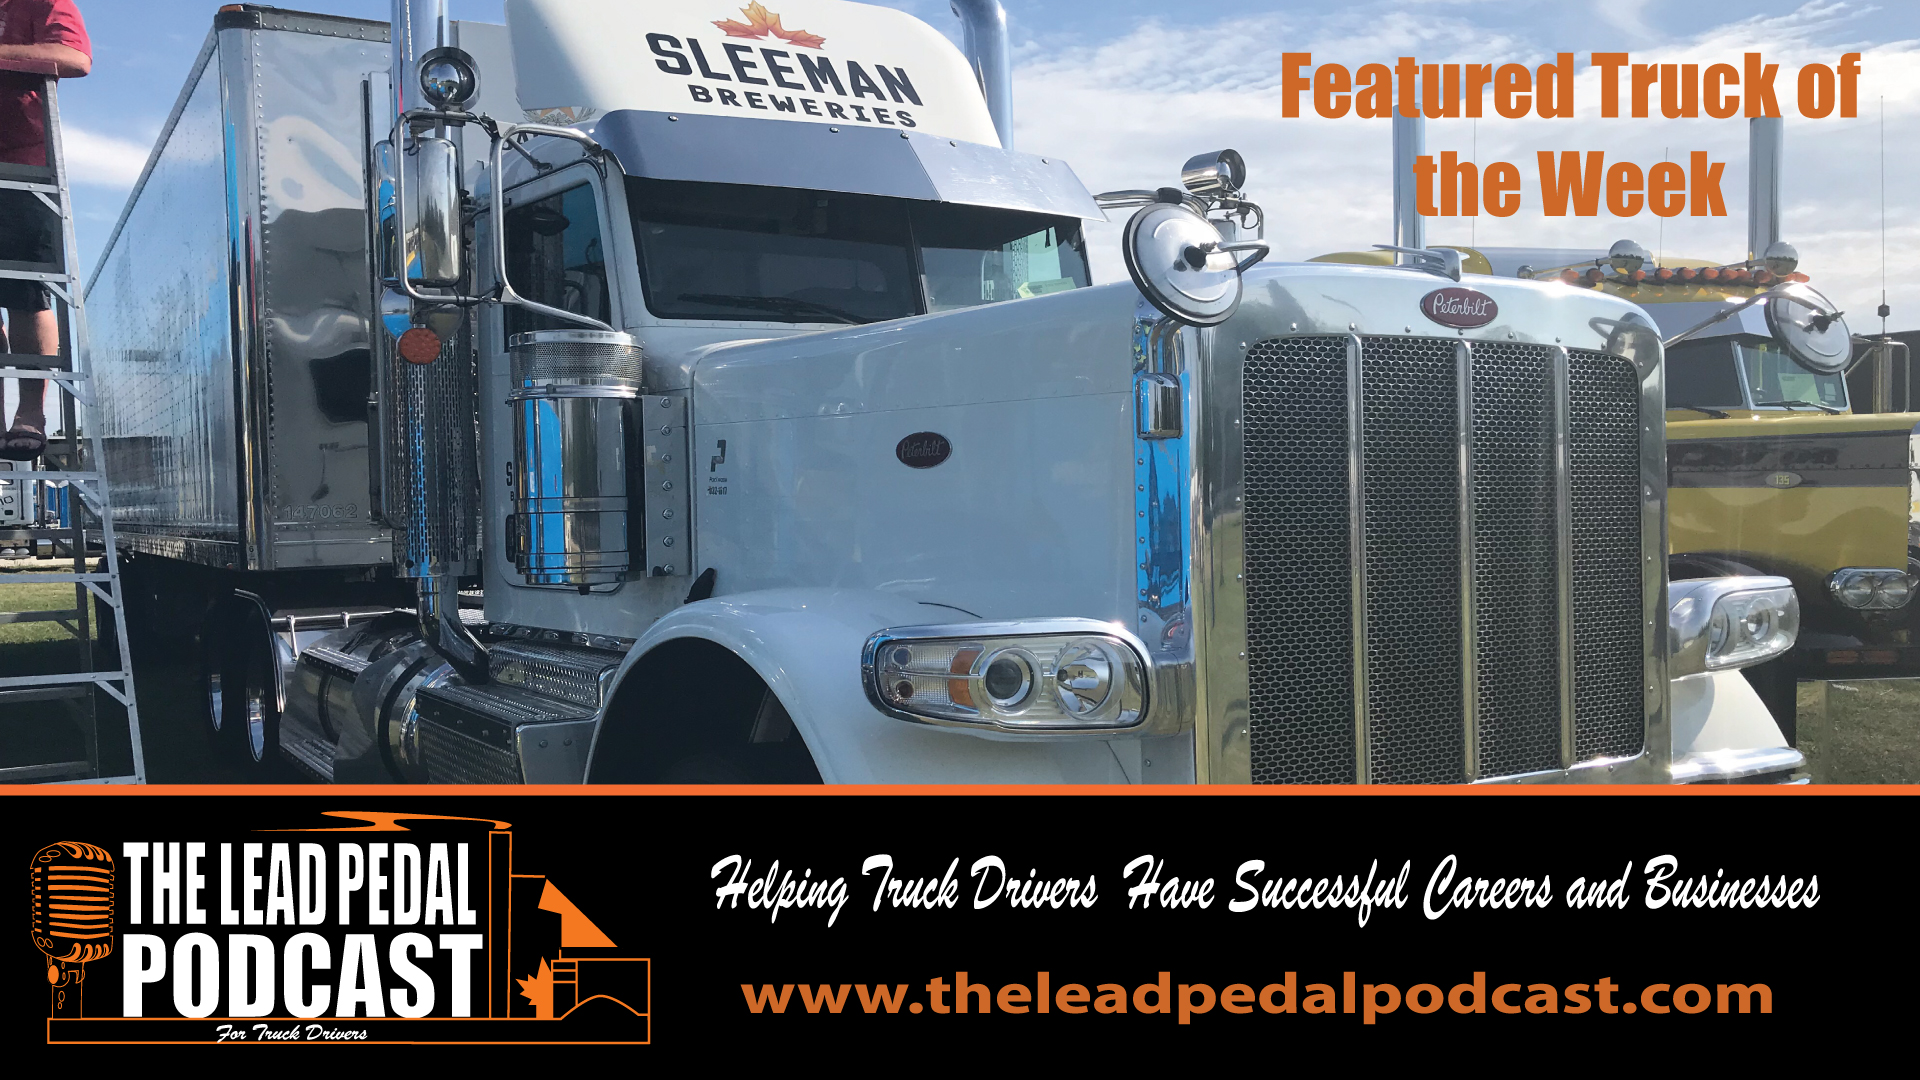 Sleemans-Truck of the Week